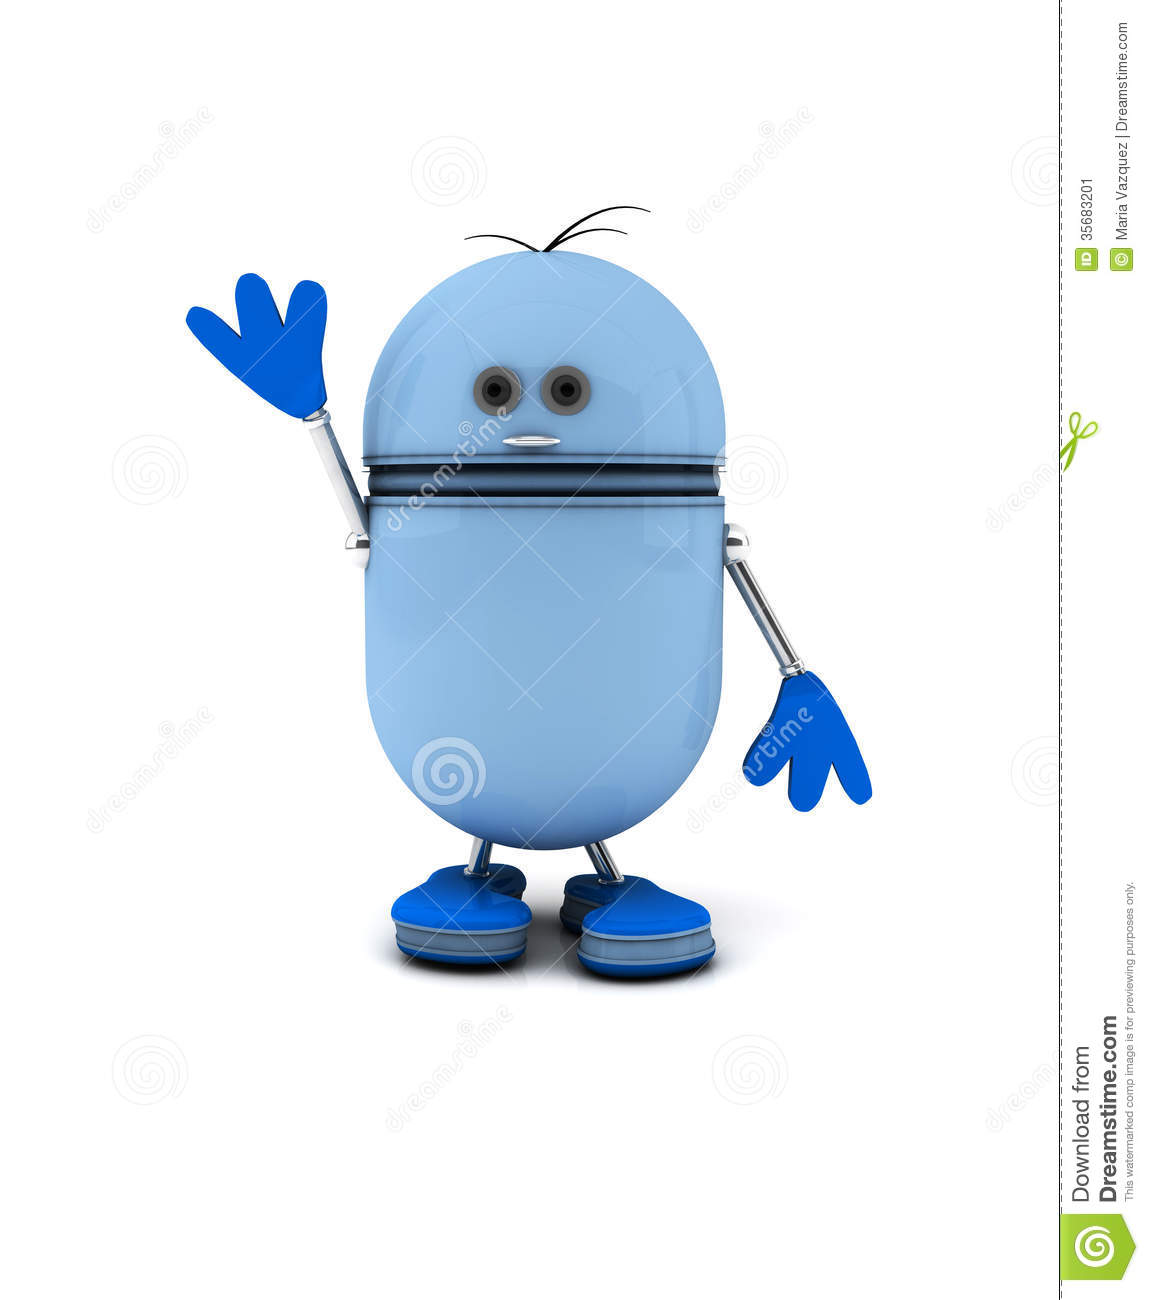 3d Blue Robot saying goodbye on white background.